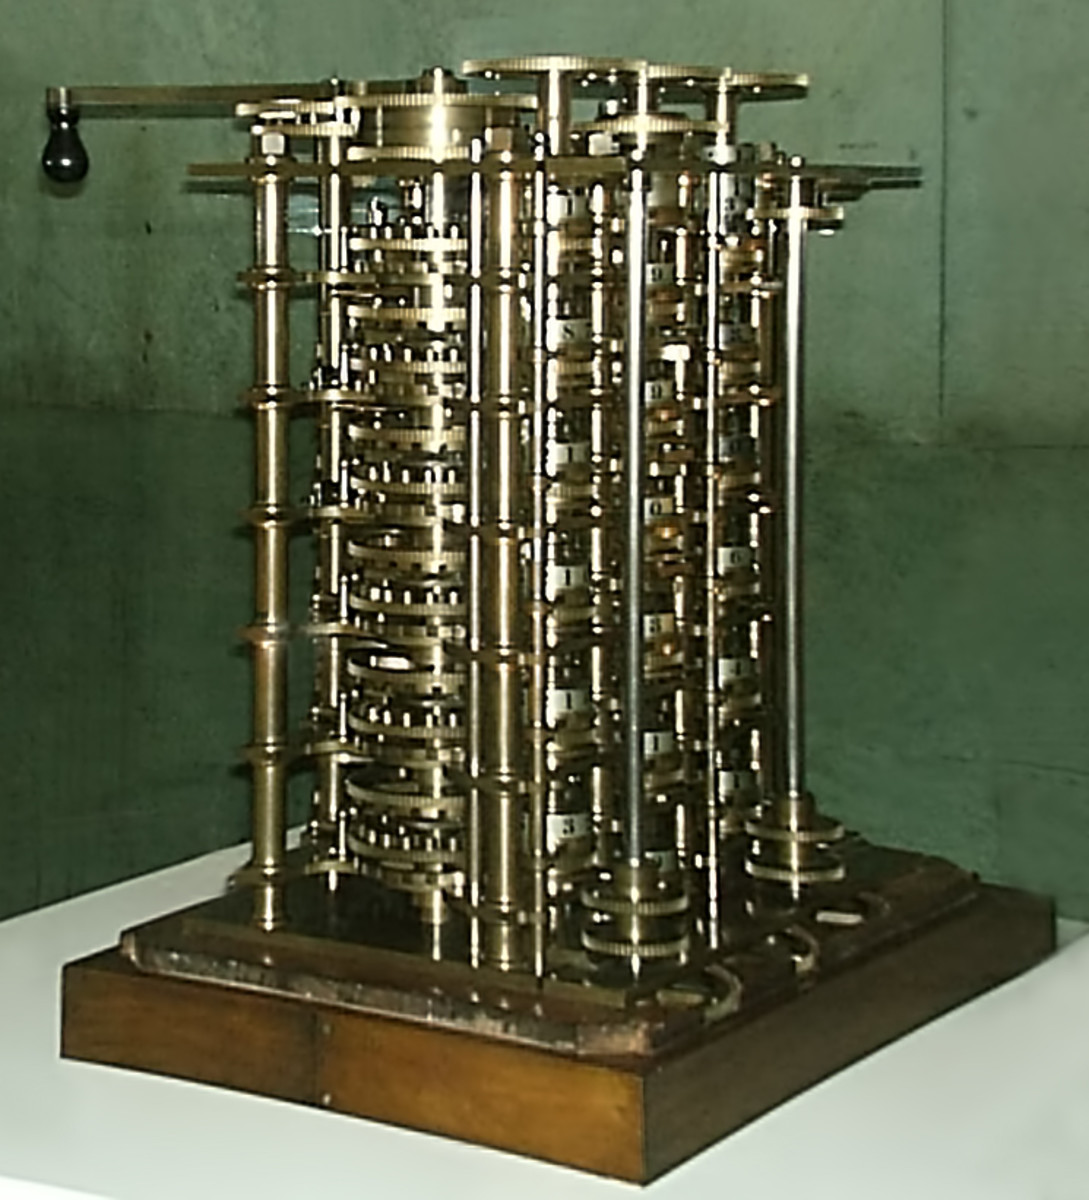 Charles Babbage's Difference engine No. 1 in Science Museum London